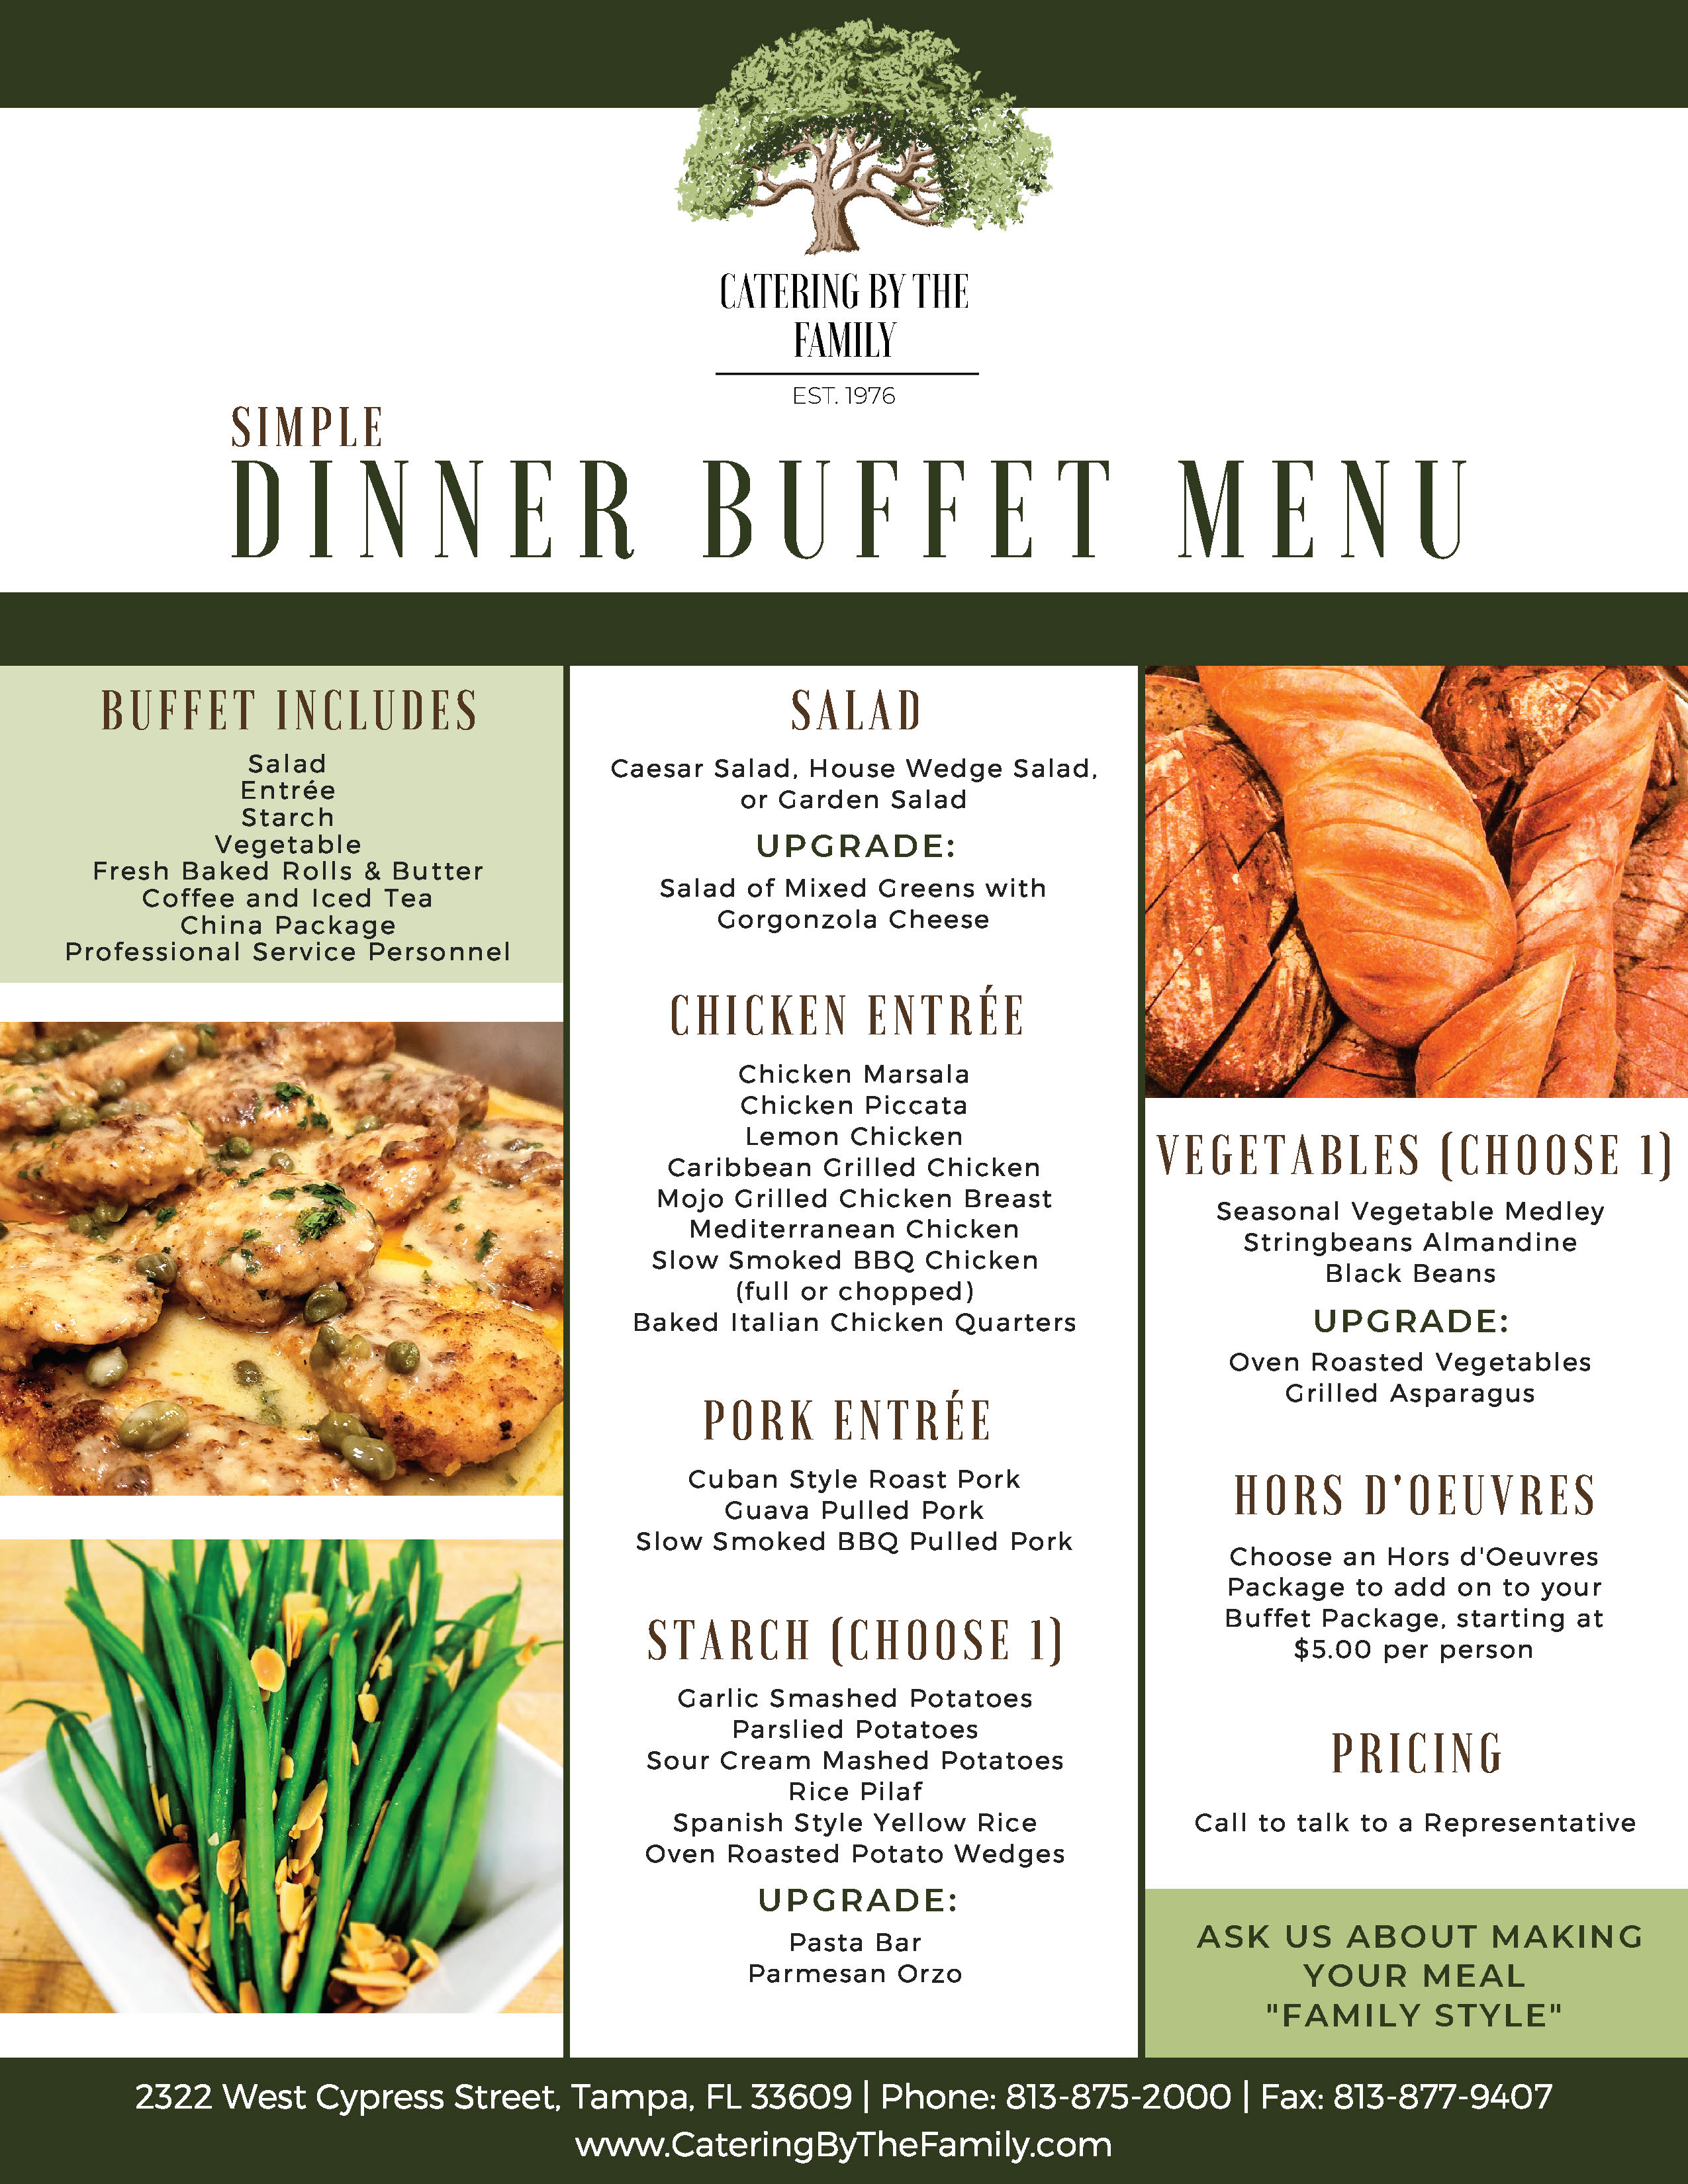 Wedding Menus Catering By The Family